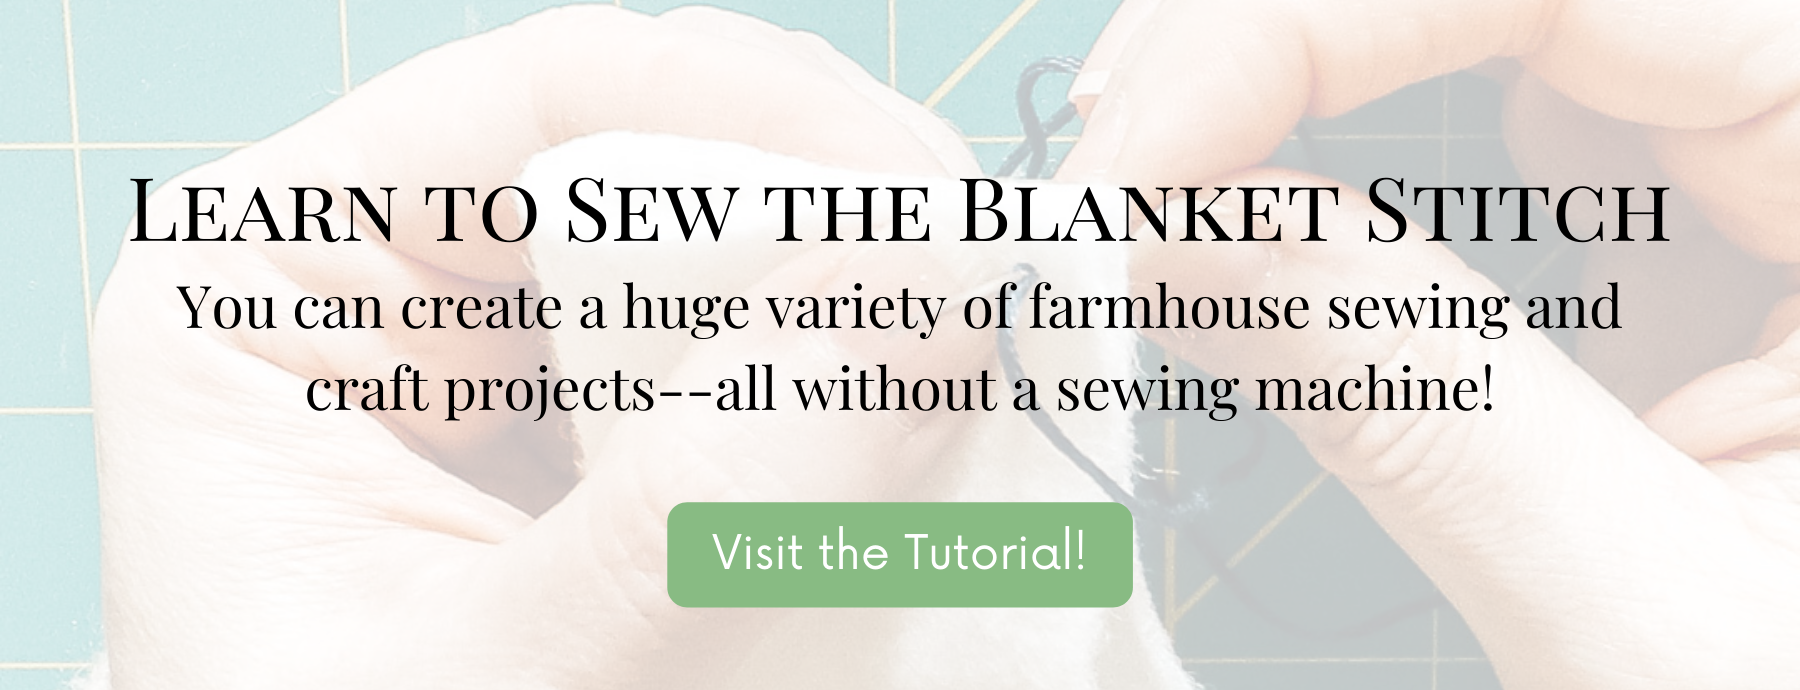 Learn this simple hand stitching technique for crafting